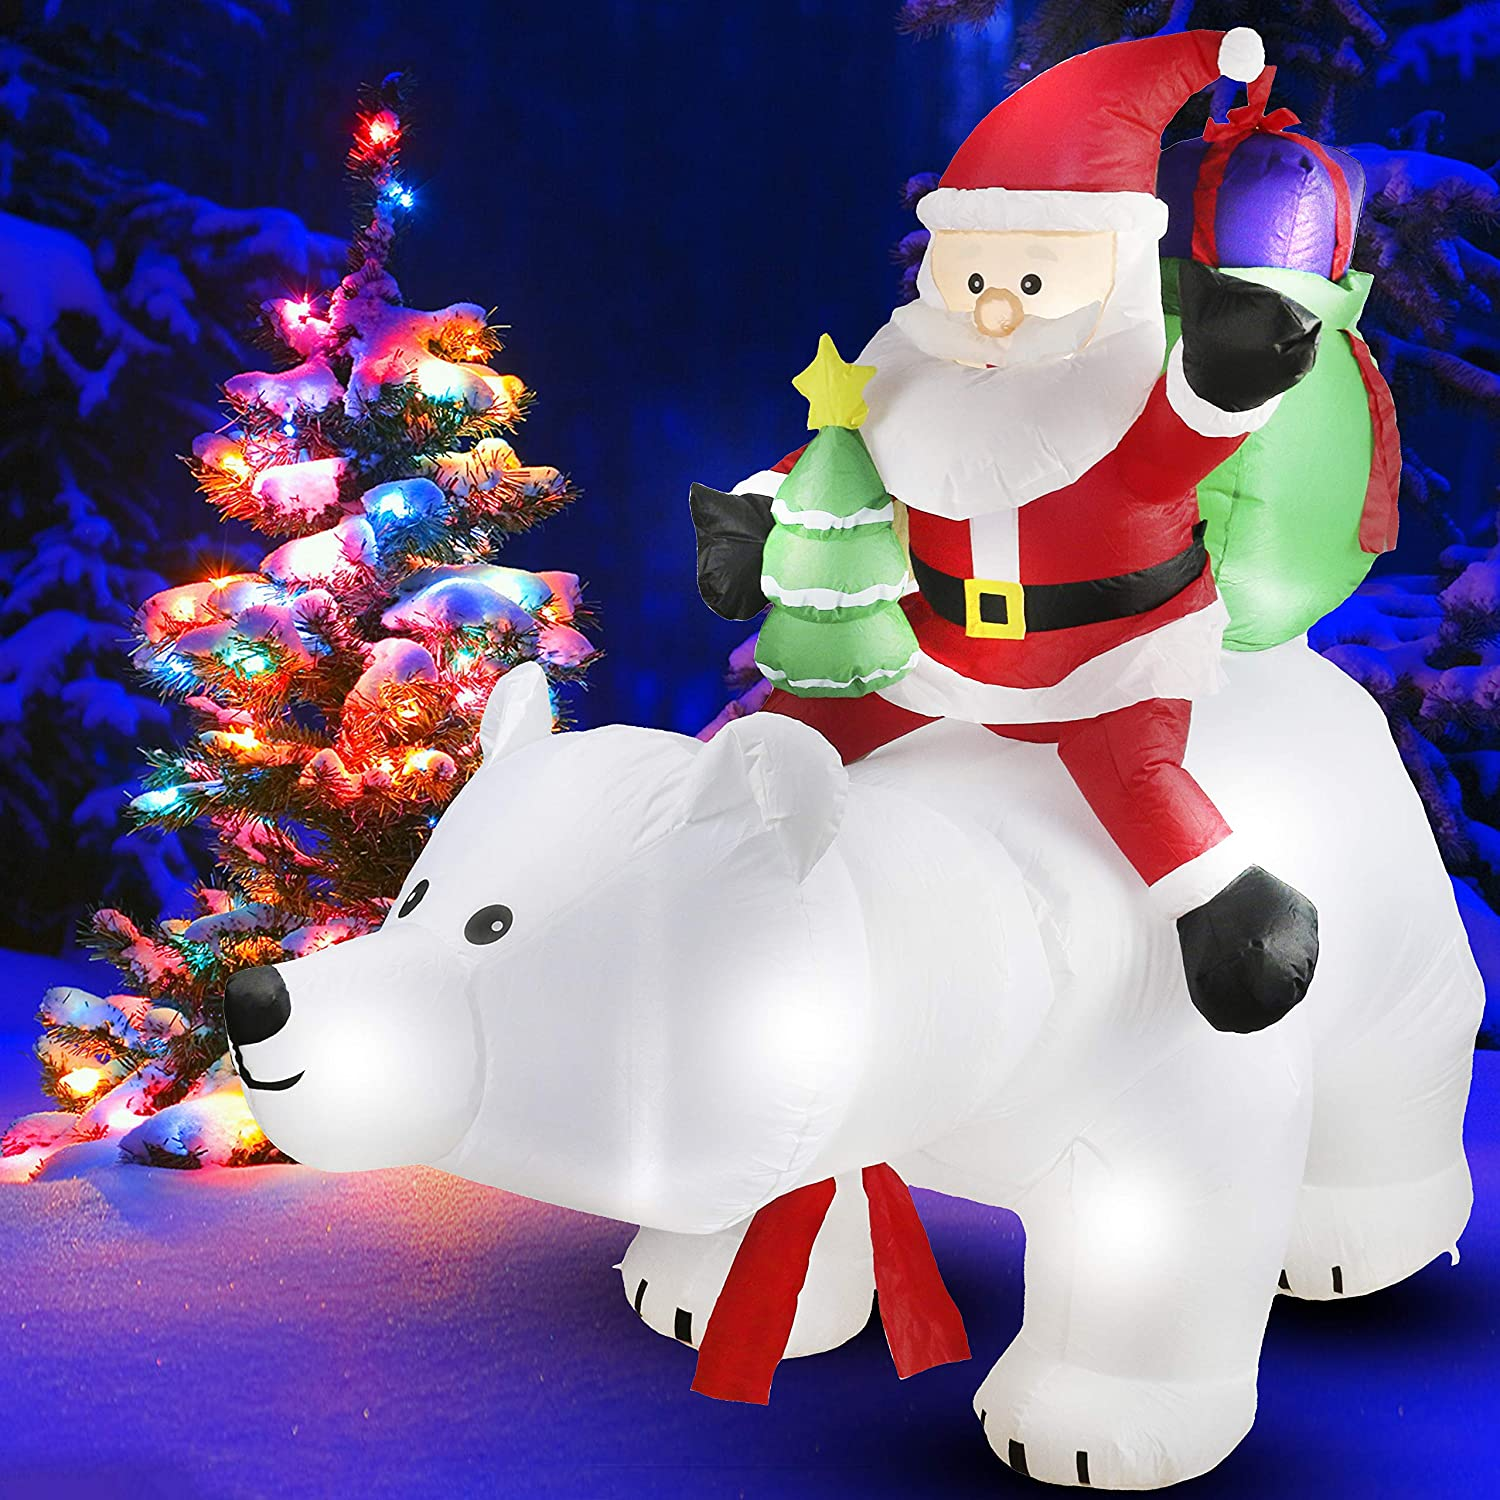 Athoinsu 6.7ft Lighted Christmas Inflatable Santa Claus on The Auto Shaking Polar Bear Self-inflate Xmas Air Blown Holiday Party Home Yard Garden Decoration